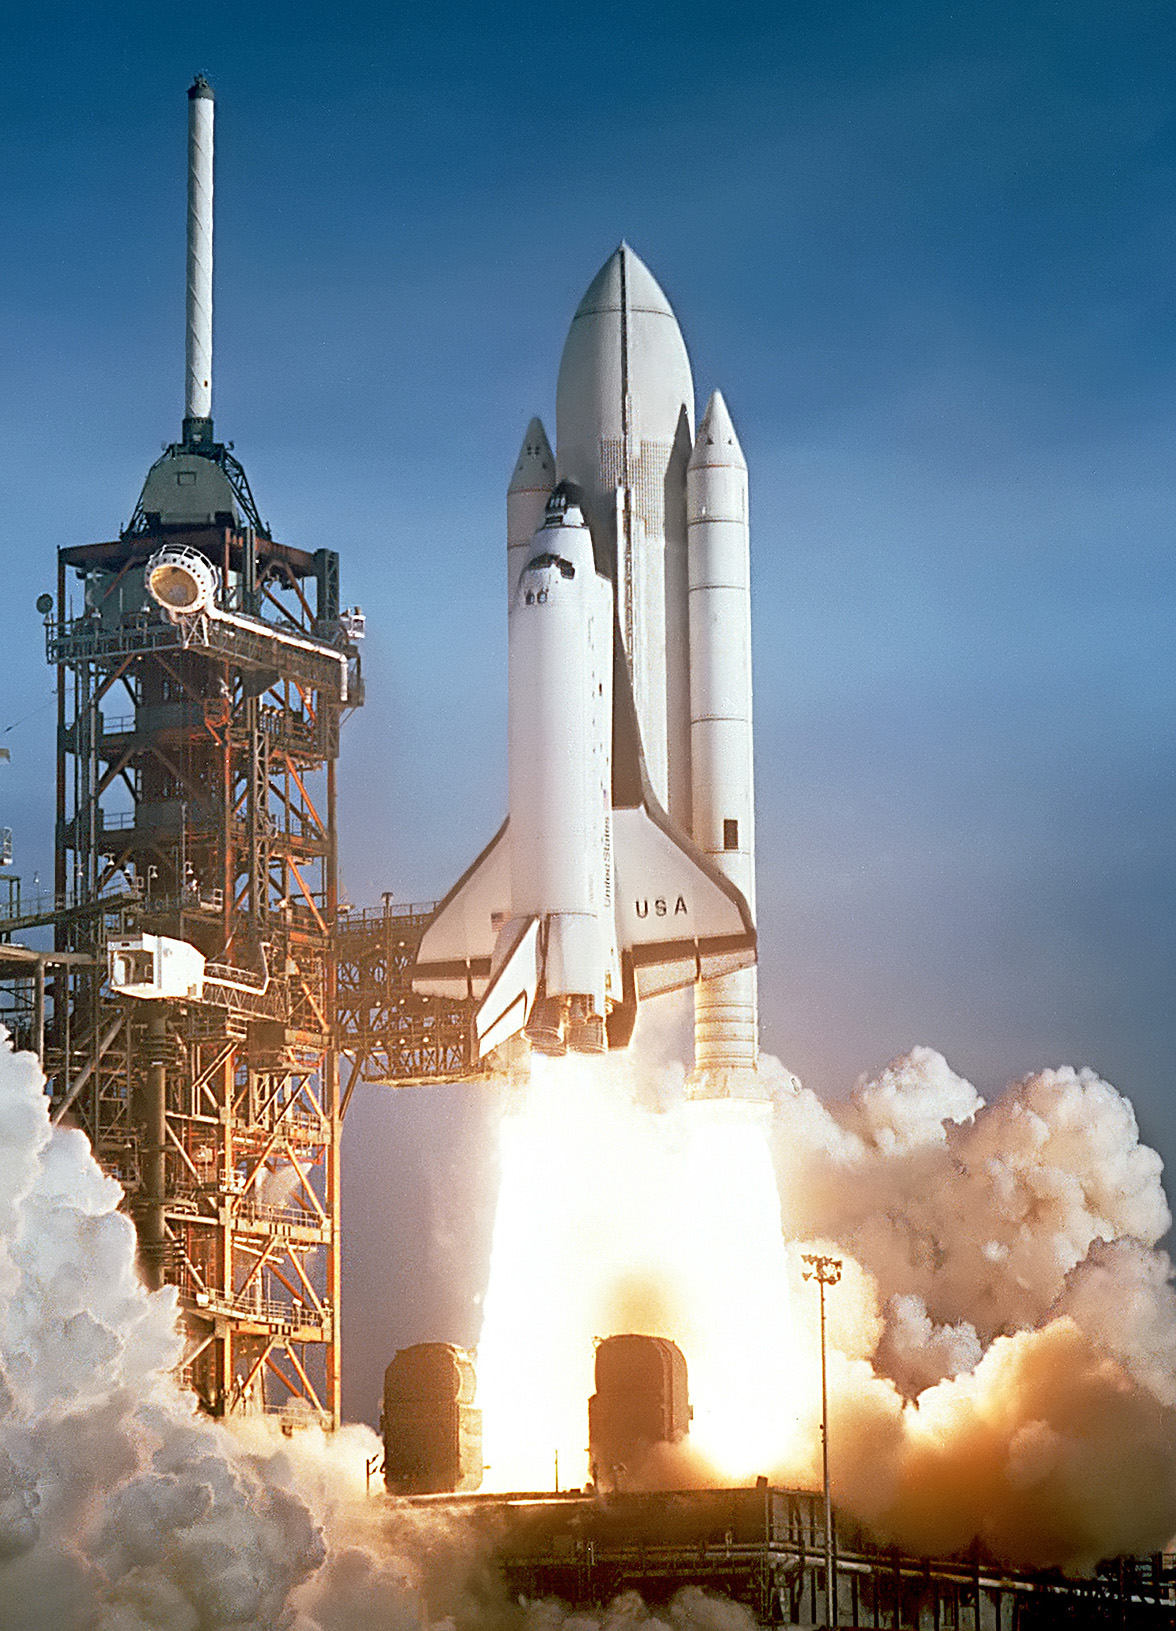 space shuttle year - photo #23